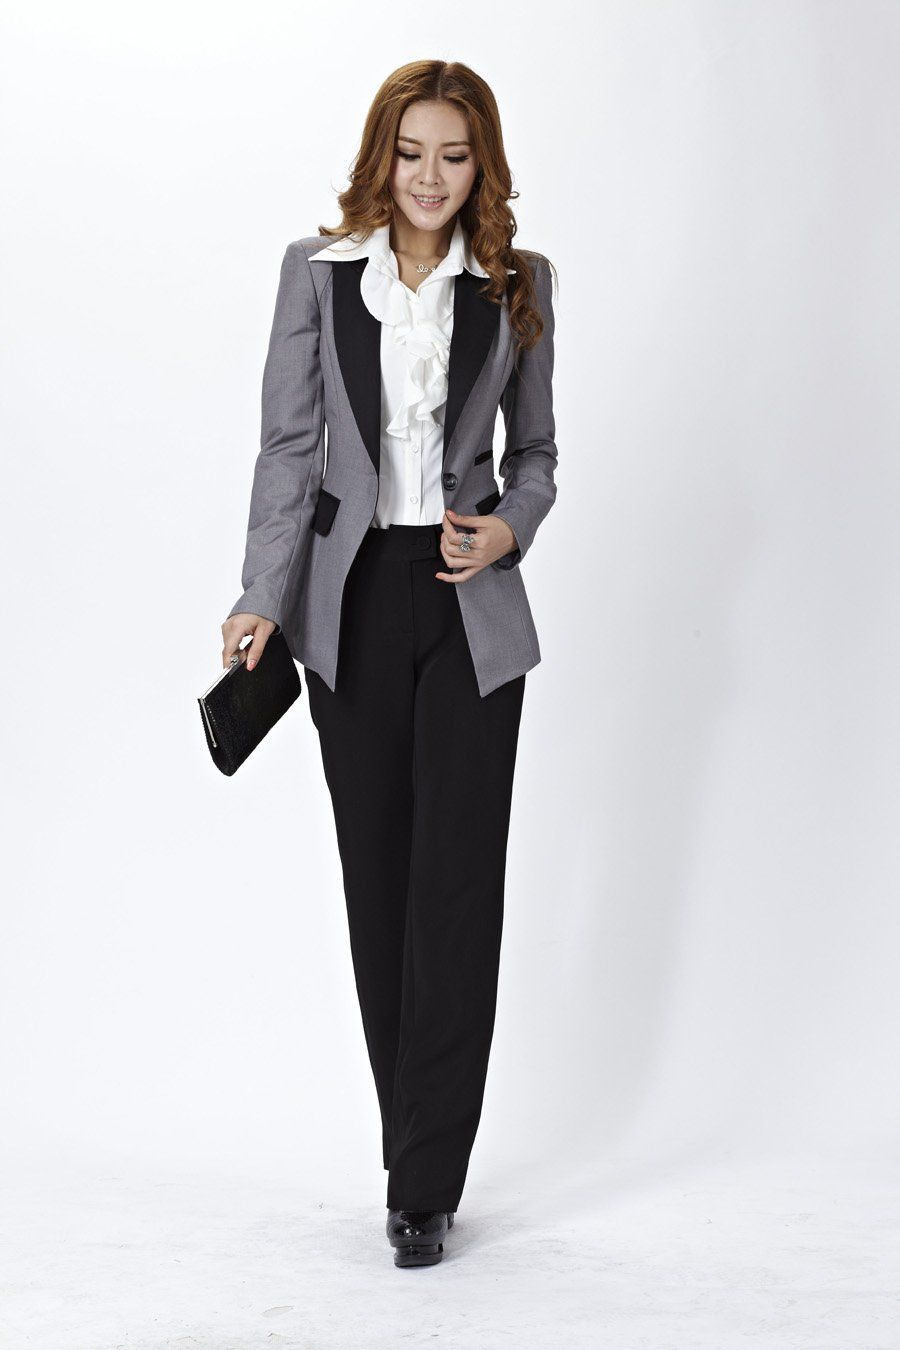 ladies pant suits 2012 new women suits blazer pants for ol ladies pant suits 2012 new women suits blazer pants for ol office ladies professional